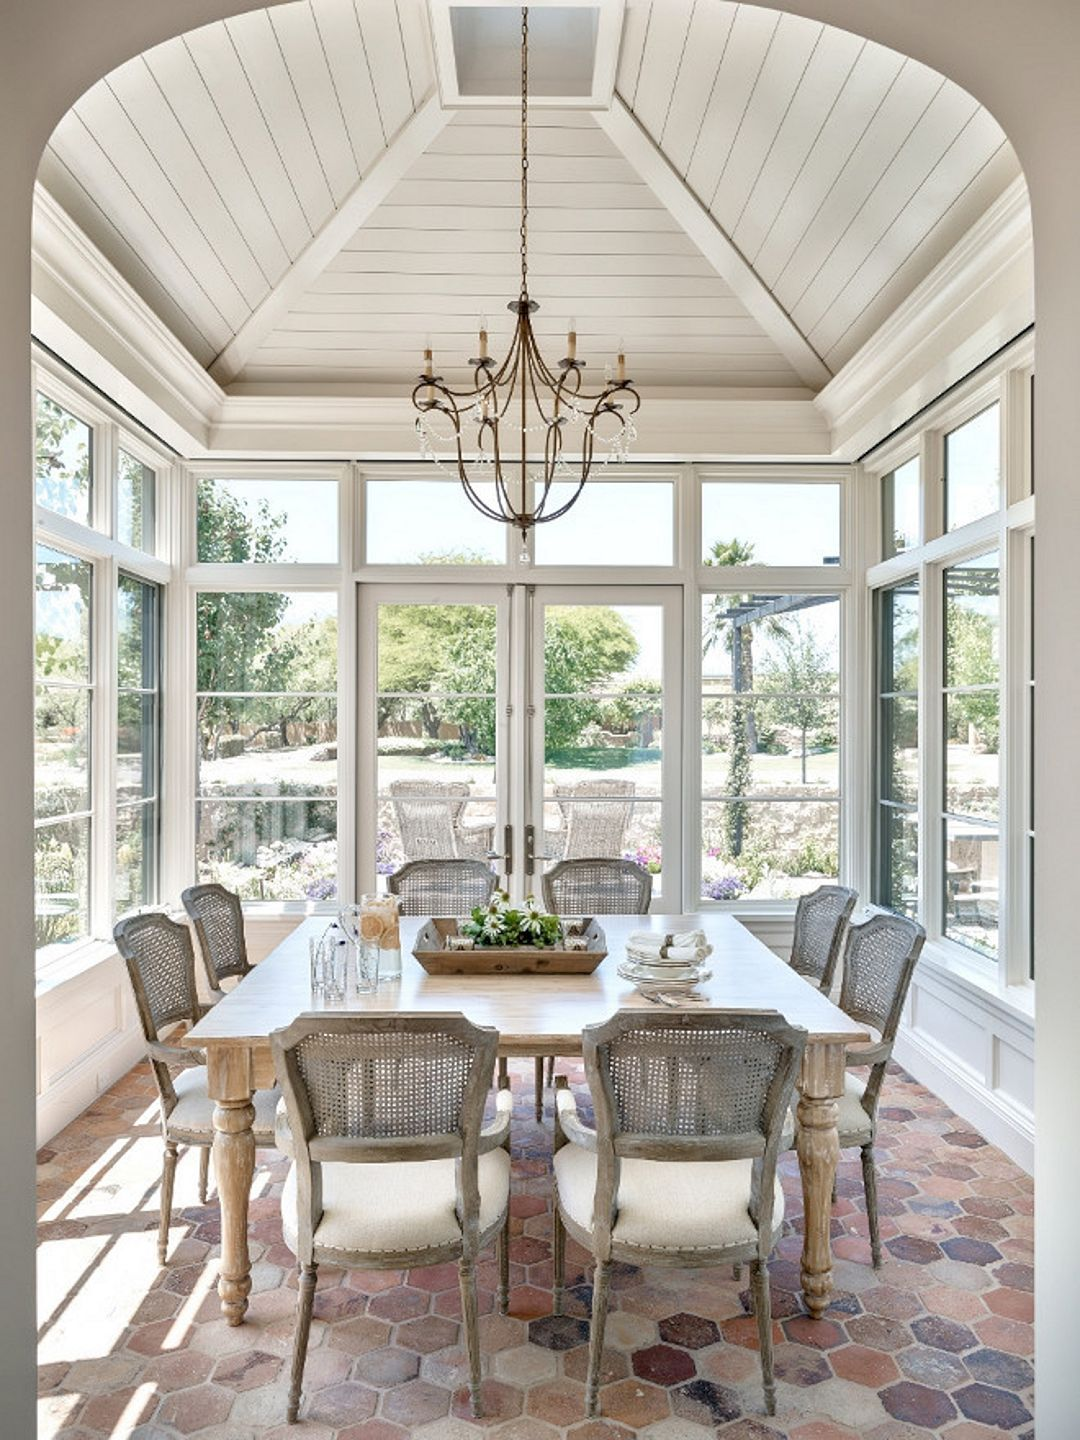 Cool 55 Brilliant And Impressive Sunroom Design Ideas For Your House This Summer Bright Dining RoomsSunroom